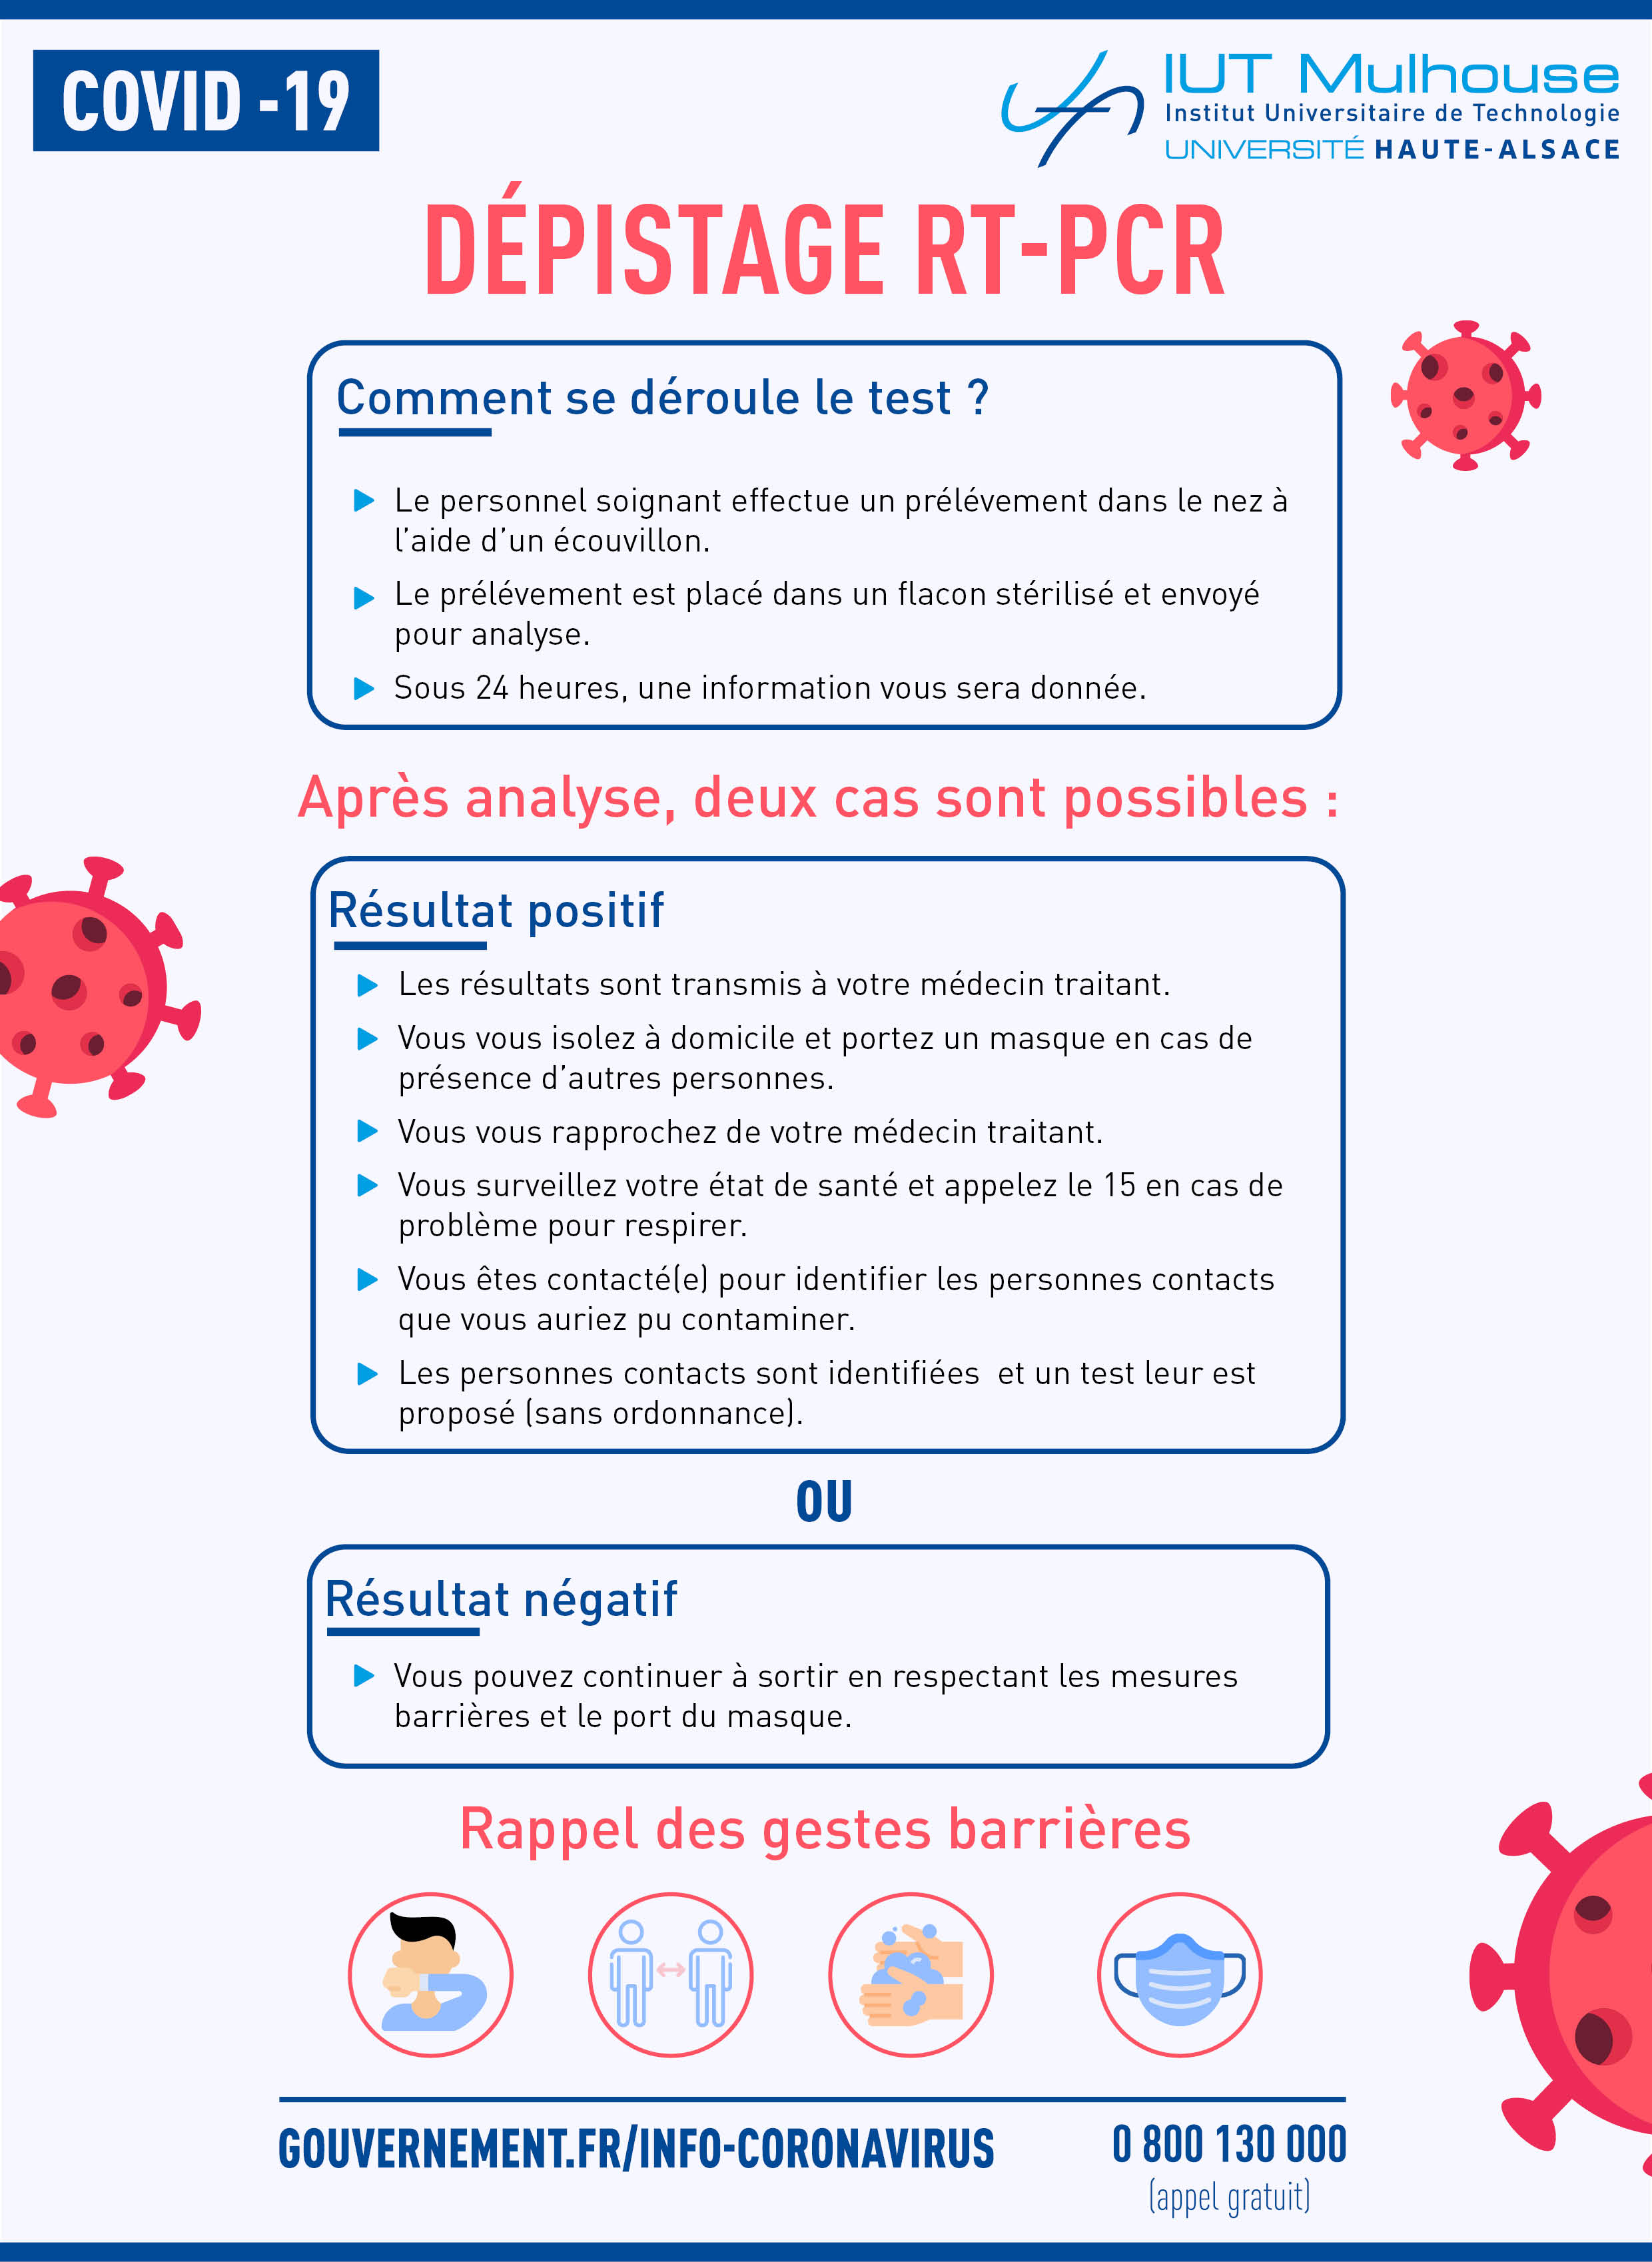 Infographie-depistage-COVID19-IUT